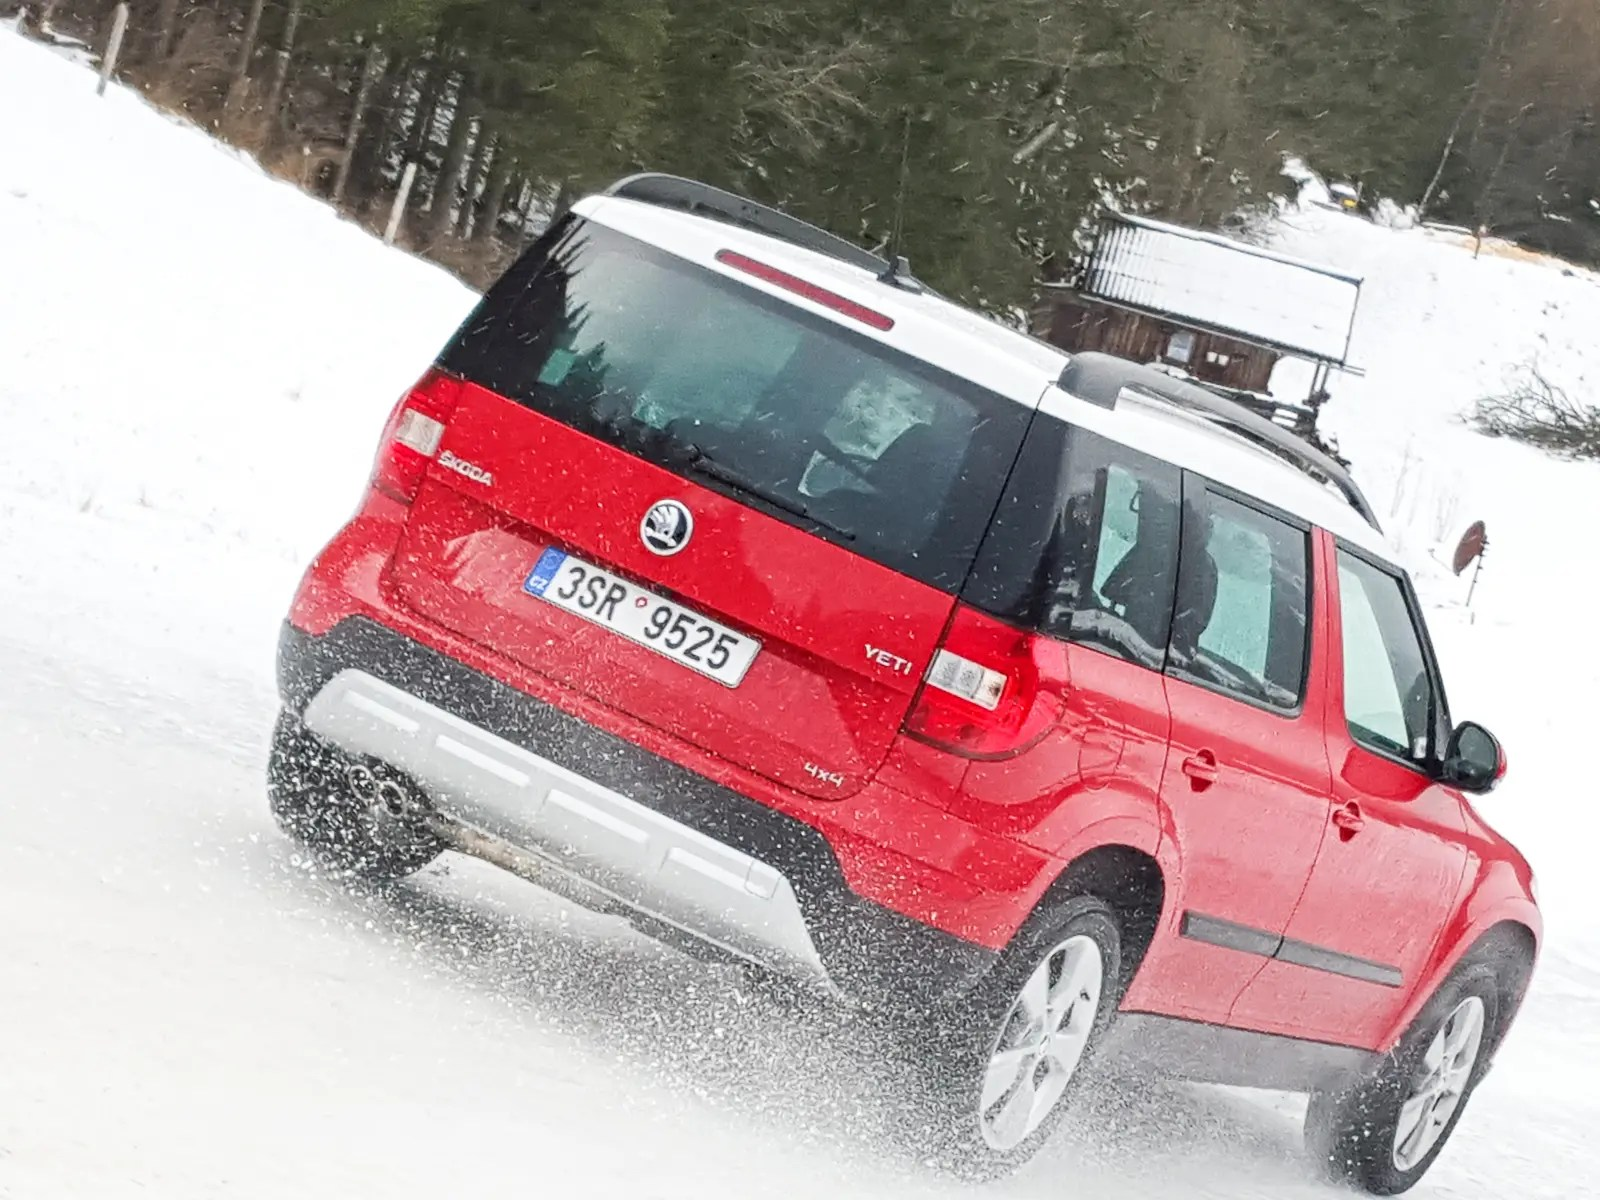 Winter Bettdecken Test 2016 Škoda 4x4 Winter Discovery Gatschige Angelegenheit